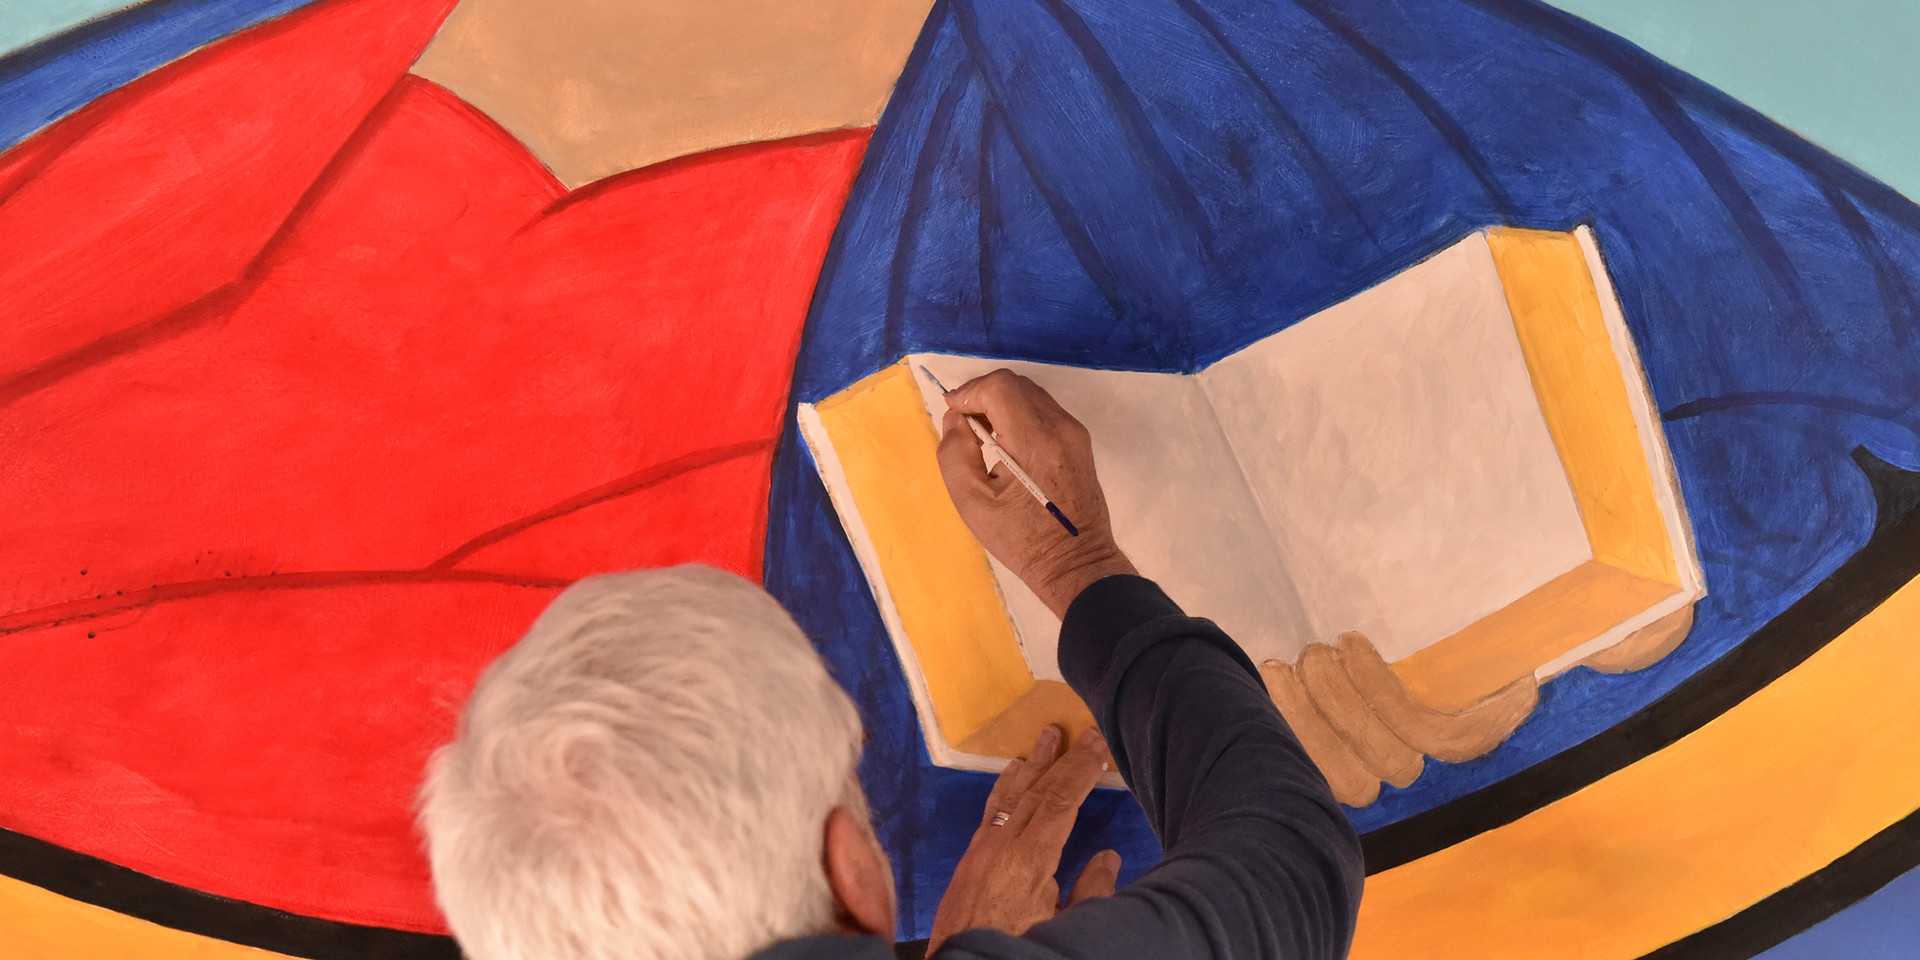 Chuck Painting the Dome